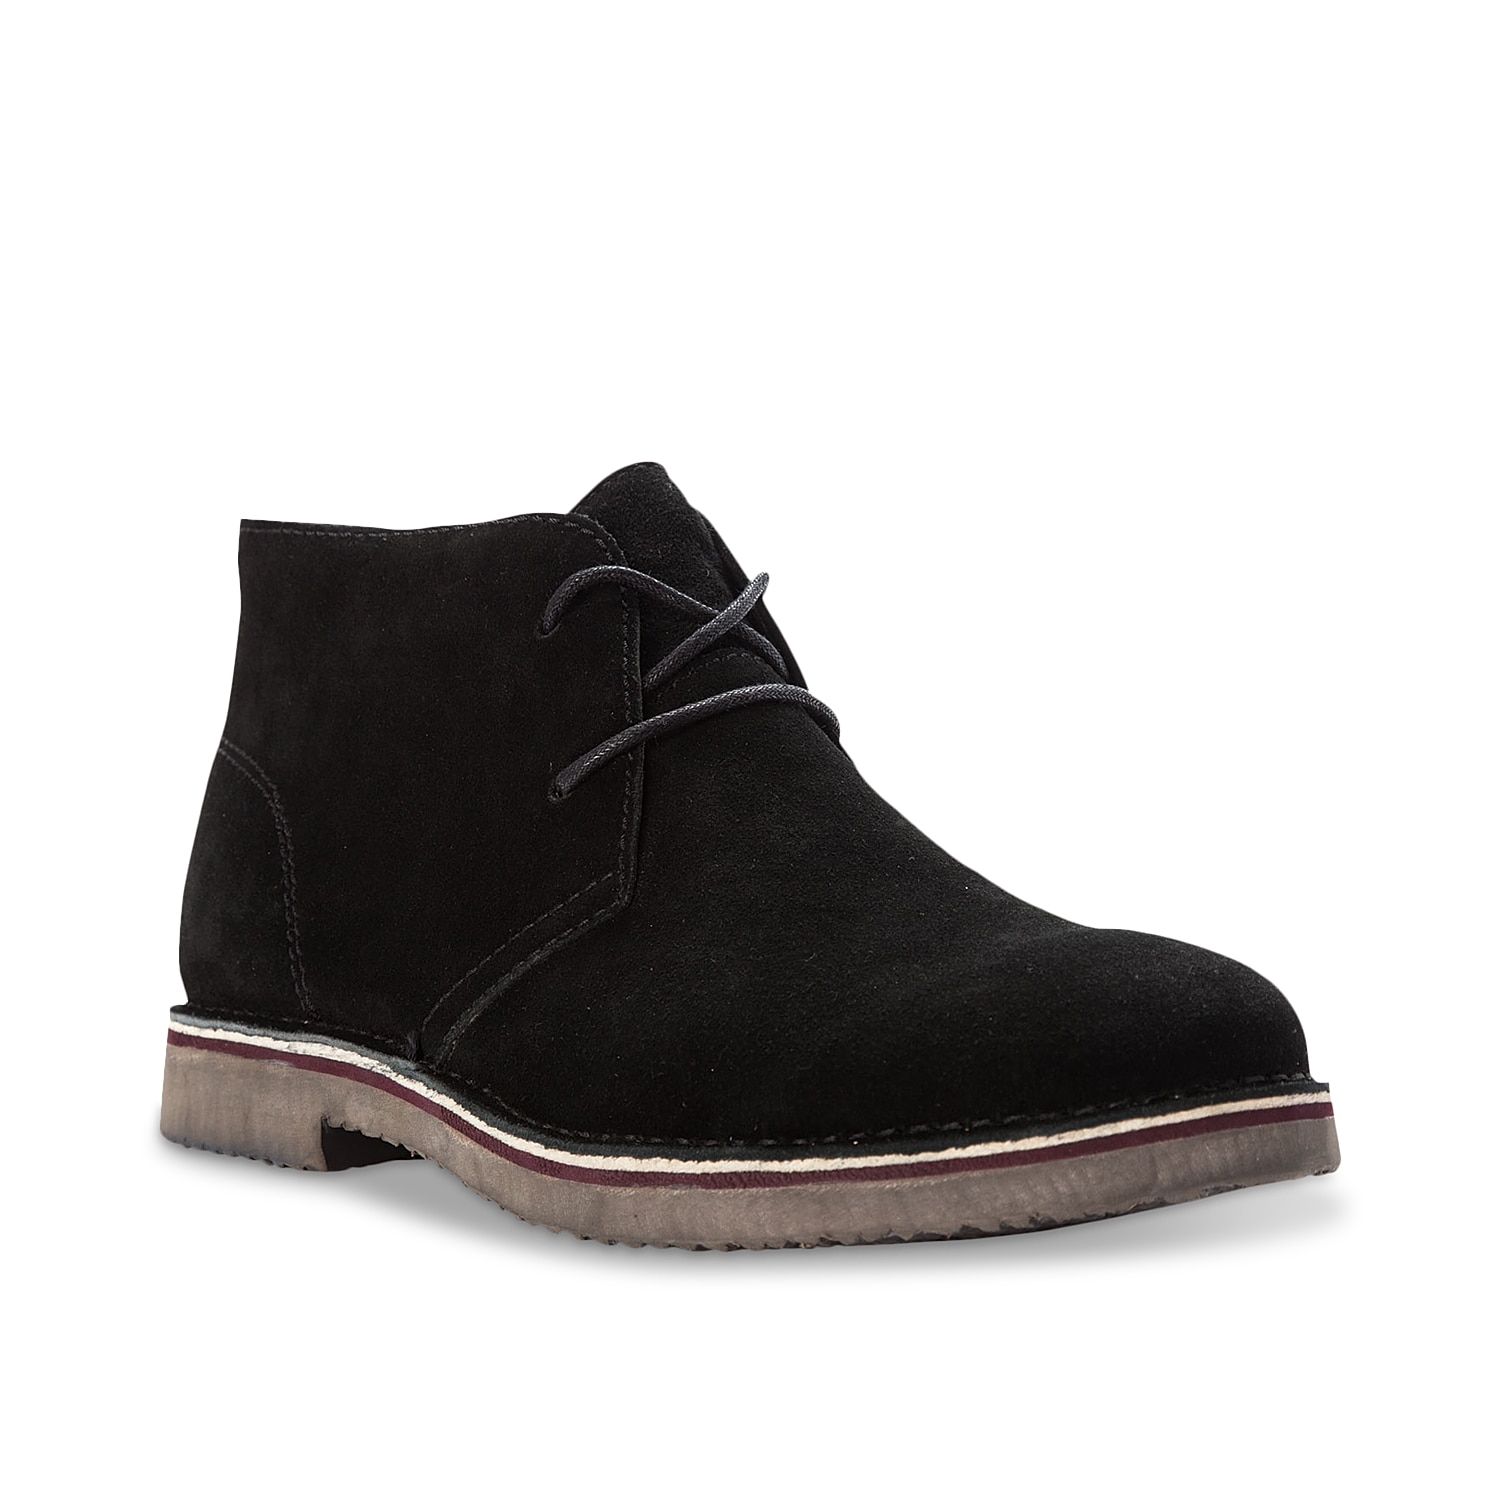 Tonal stitching and a two-lace design lend craftsman style to the Propet Findley chukkas. This iconic boot features a rubber outsole that\\\'s layered with EVA for added cushioning.